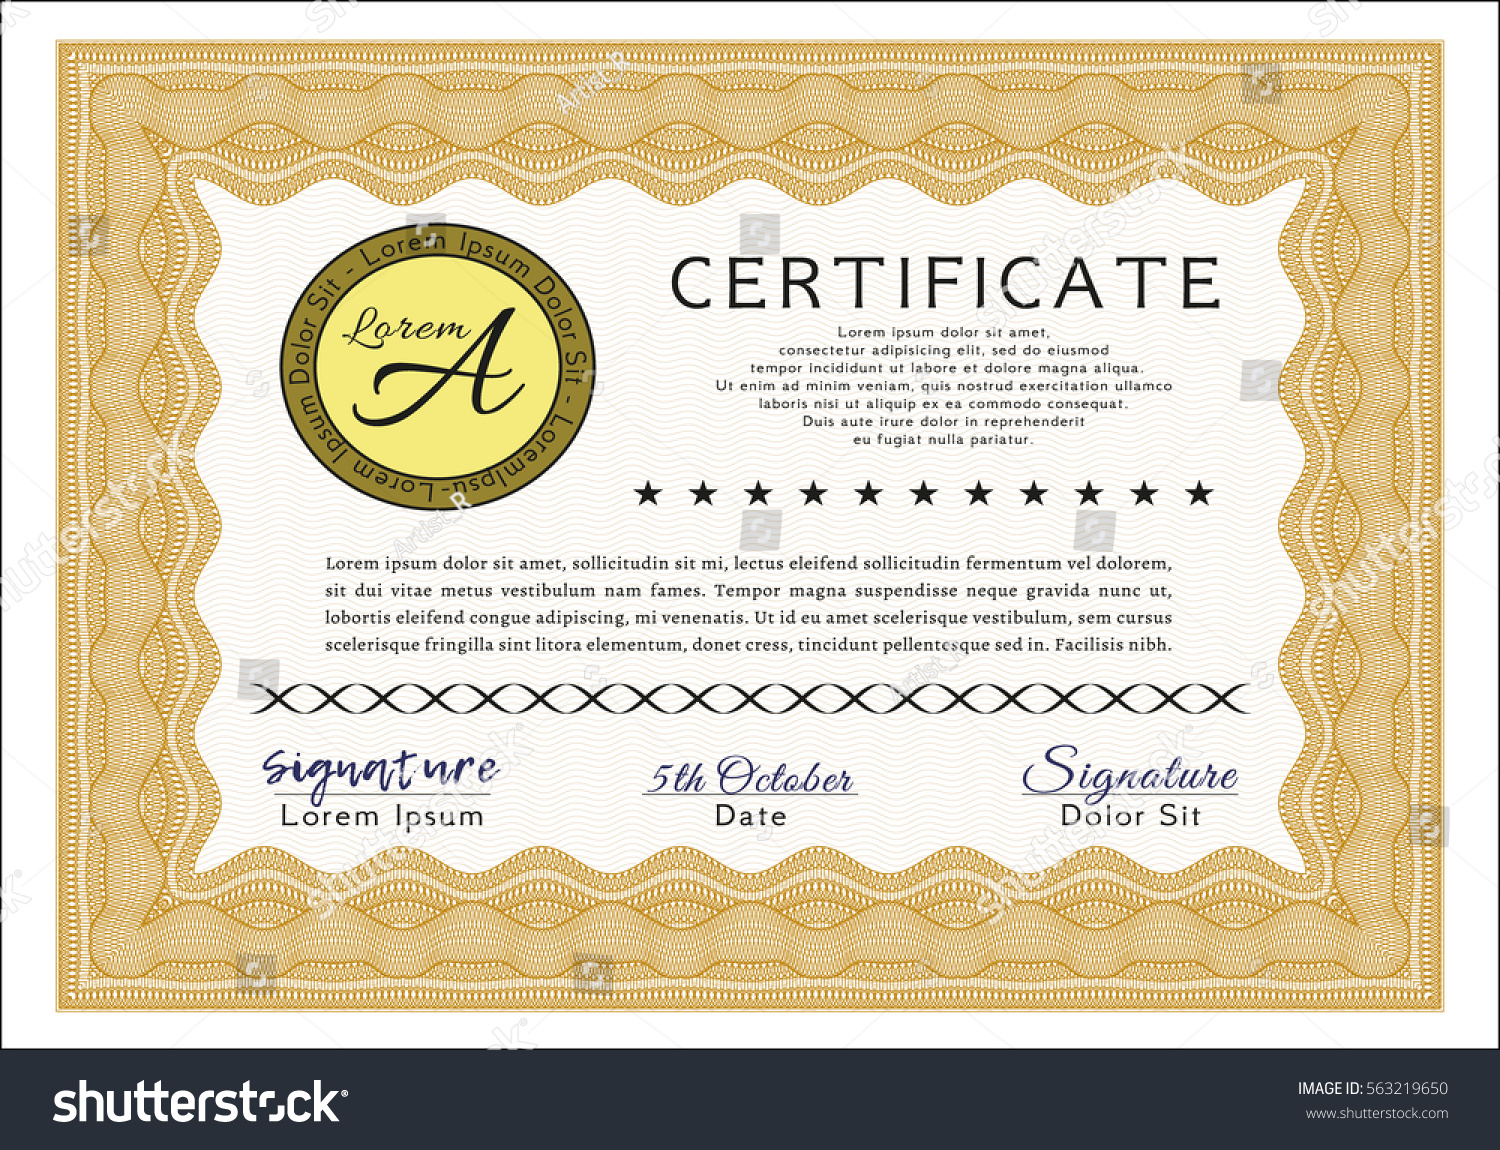 Stock certificate template stock certificate powerpoint templates crystalgraphics what would you do if your boss asked you to prepare share stock certificate templates for your yadclub Choice Image